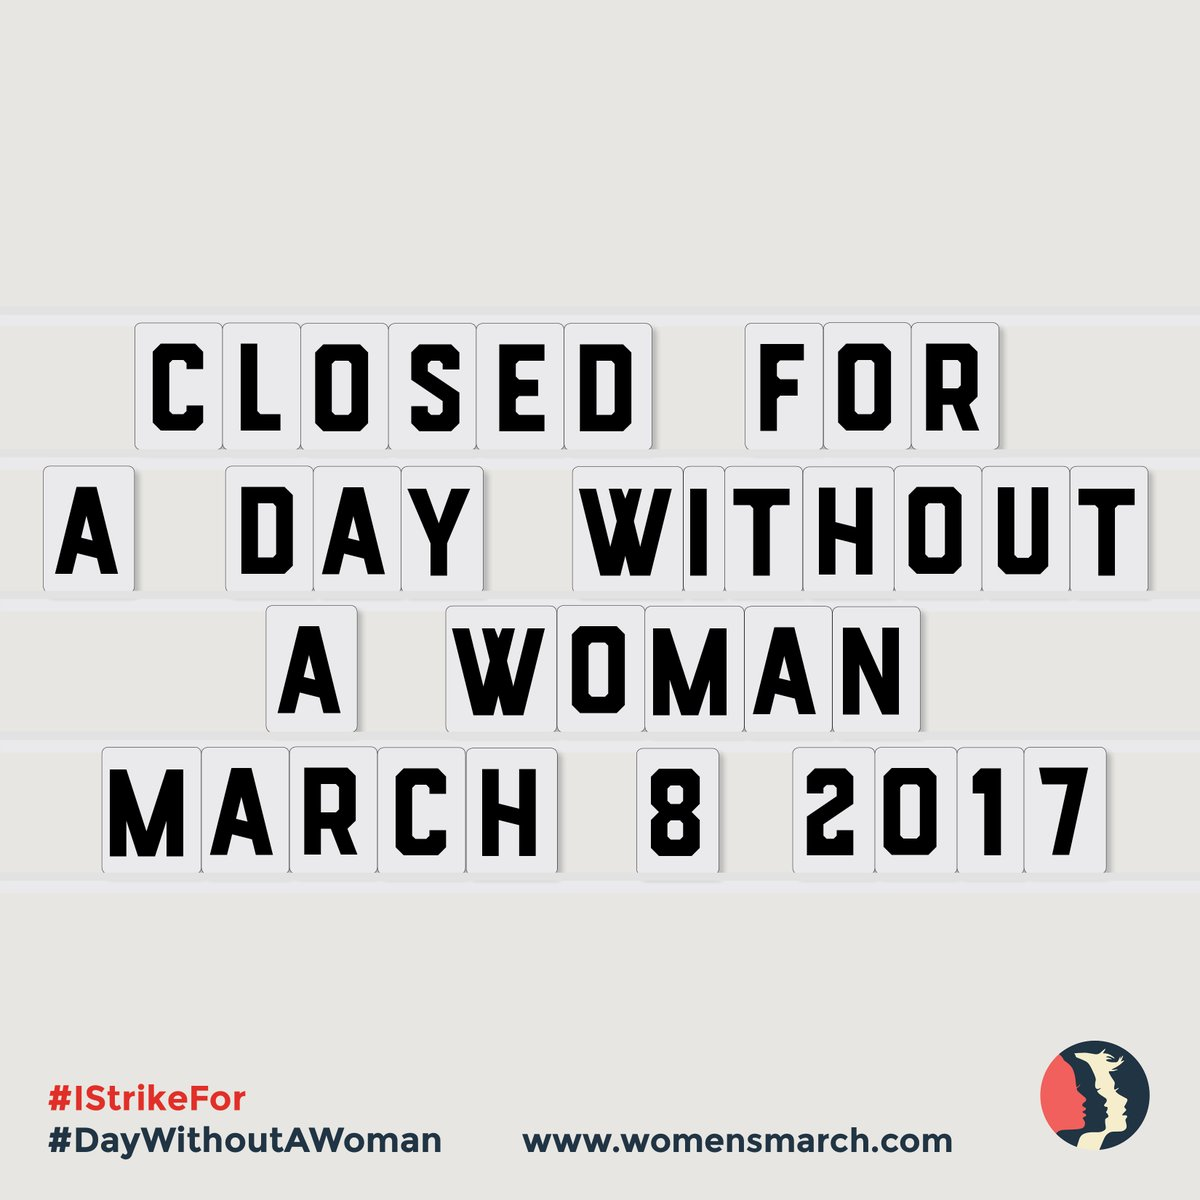 Lotto marzo #daywithoutawoman #nonunadimeno